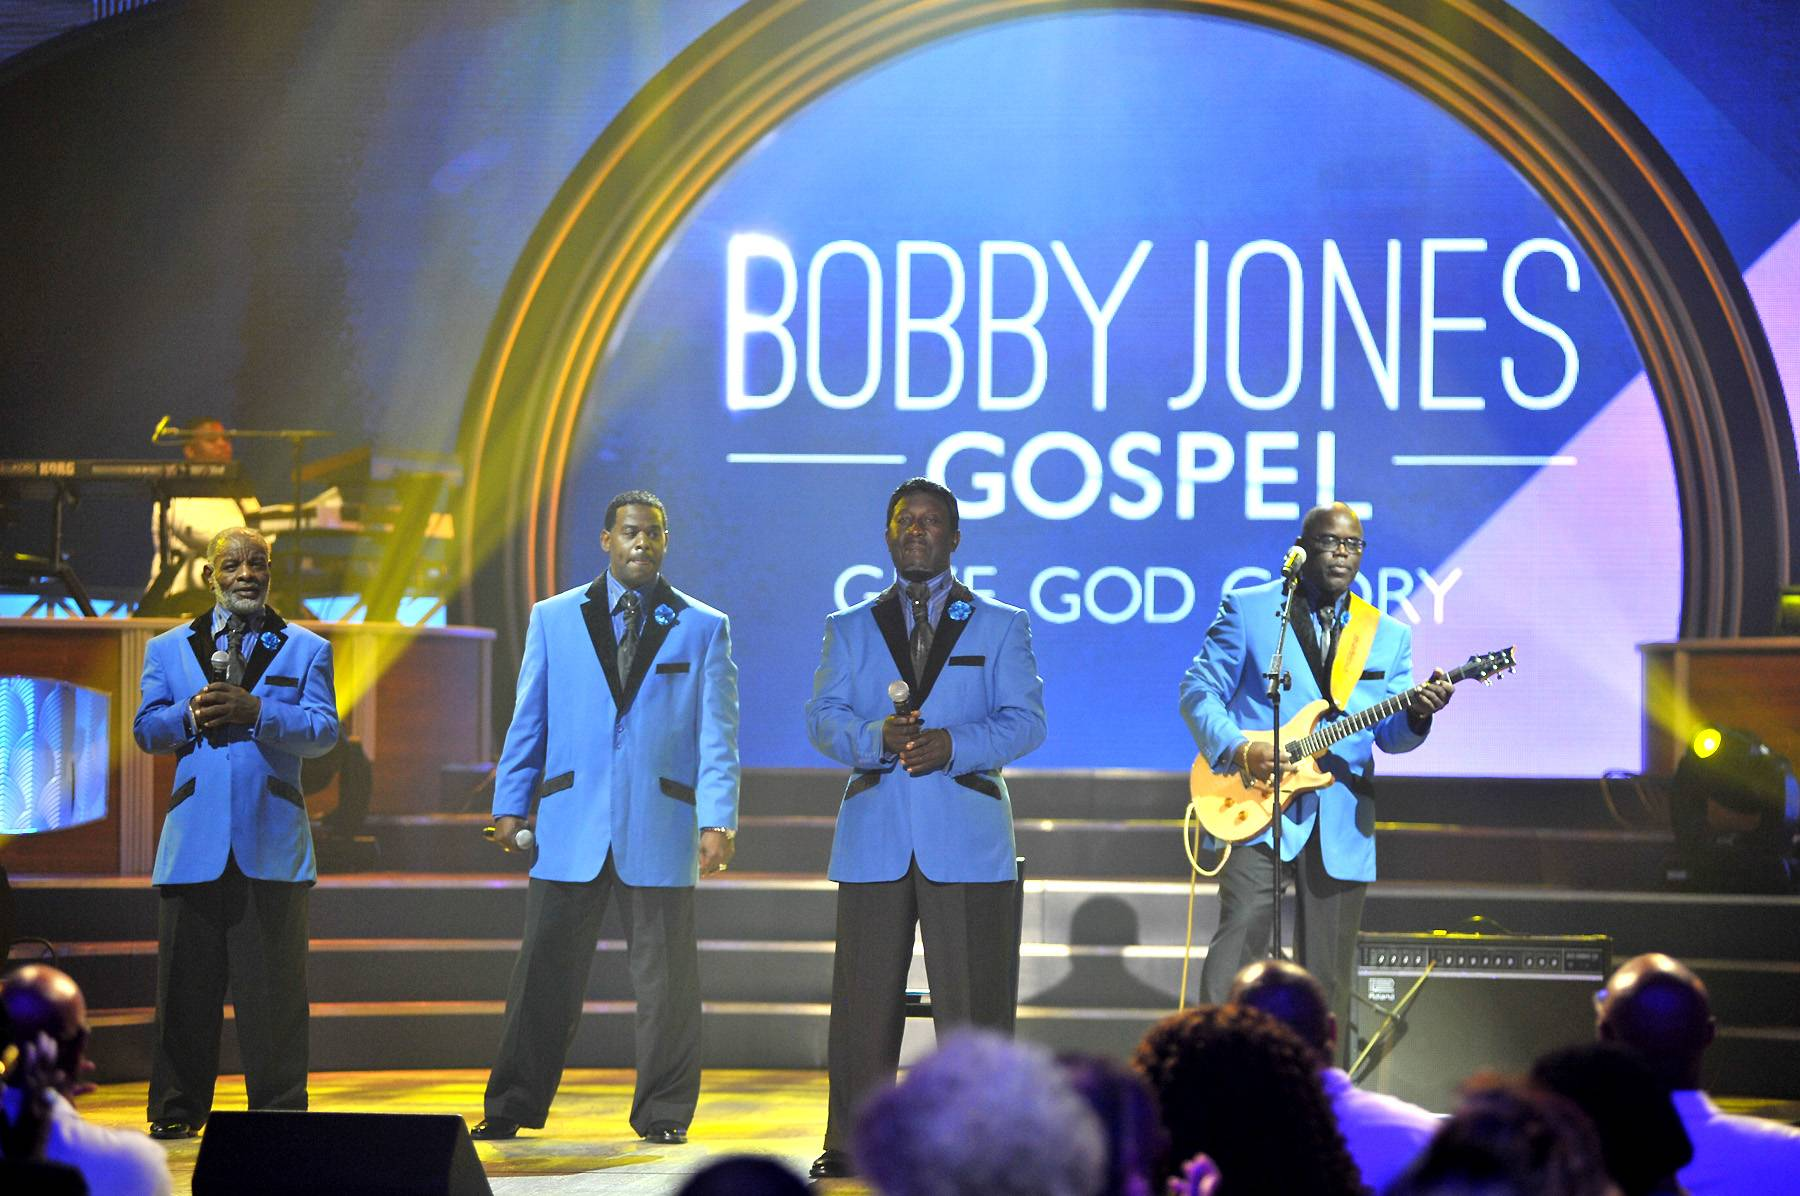 Doc McKenzie and the Hi-Lites Performance - Doc McKenzie and the Hi-Lites give the people an old-school performance during the taping of BET's Bobby Jones Gospel at BET Studios on August 1, 2014, in Washington, D.C.(Photo: Kris Connor/Getty Images for BET Networks)